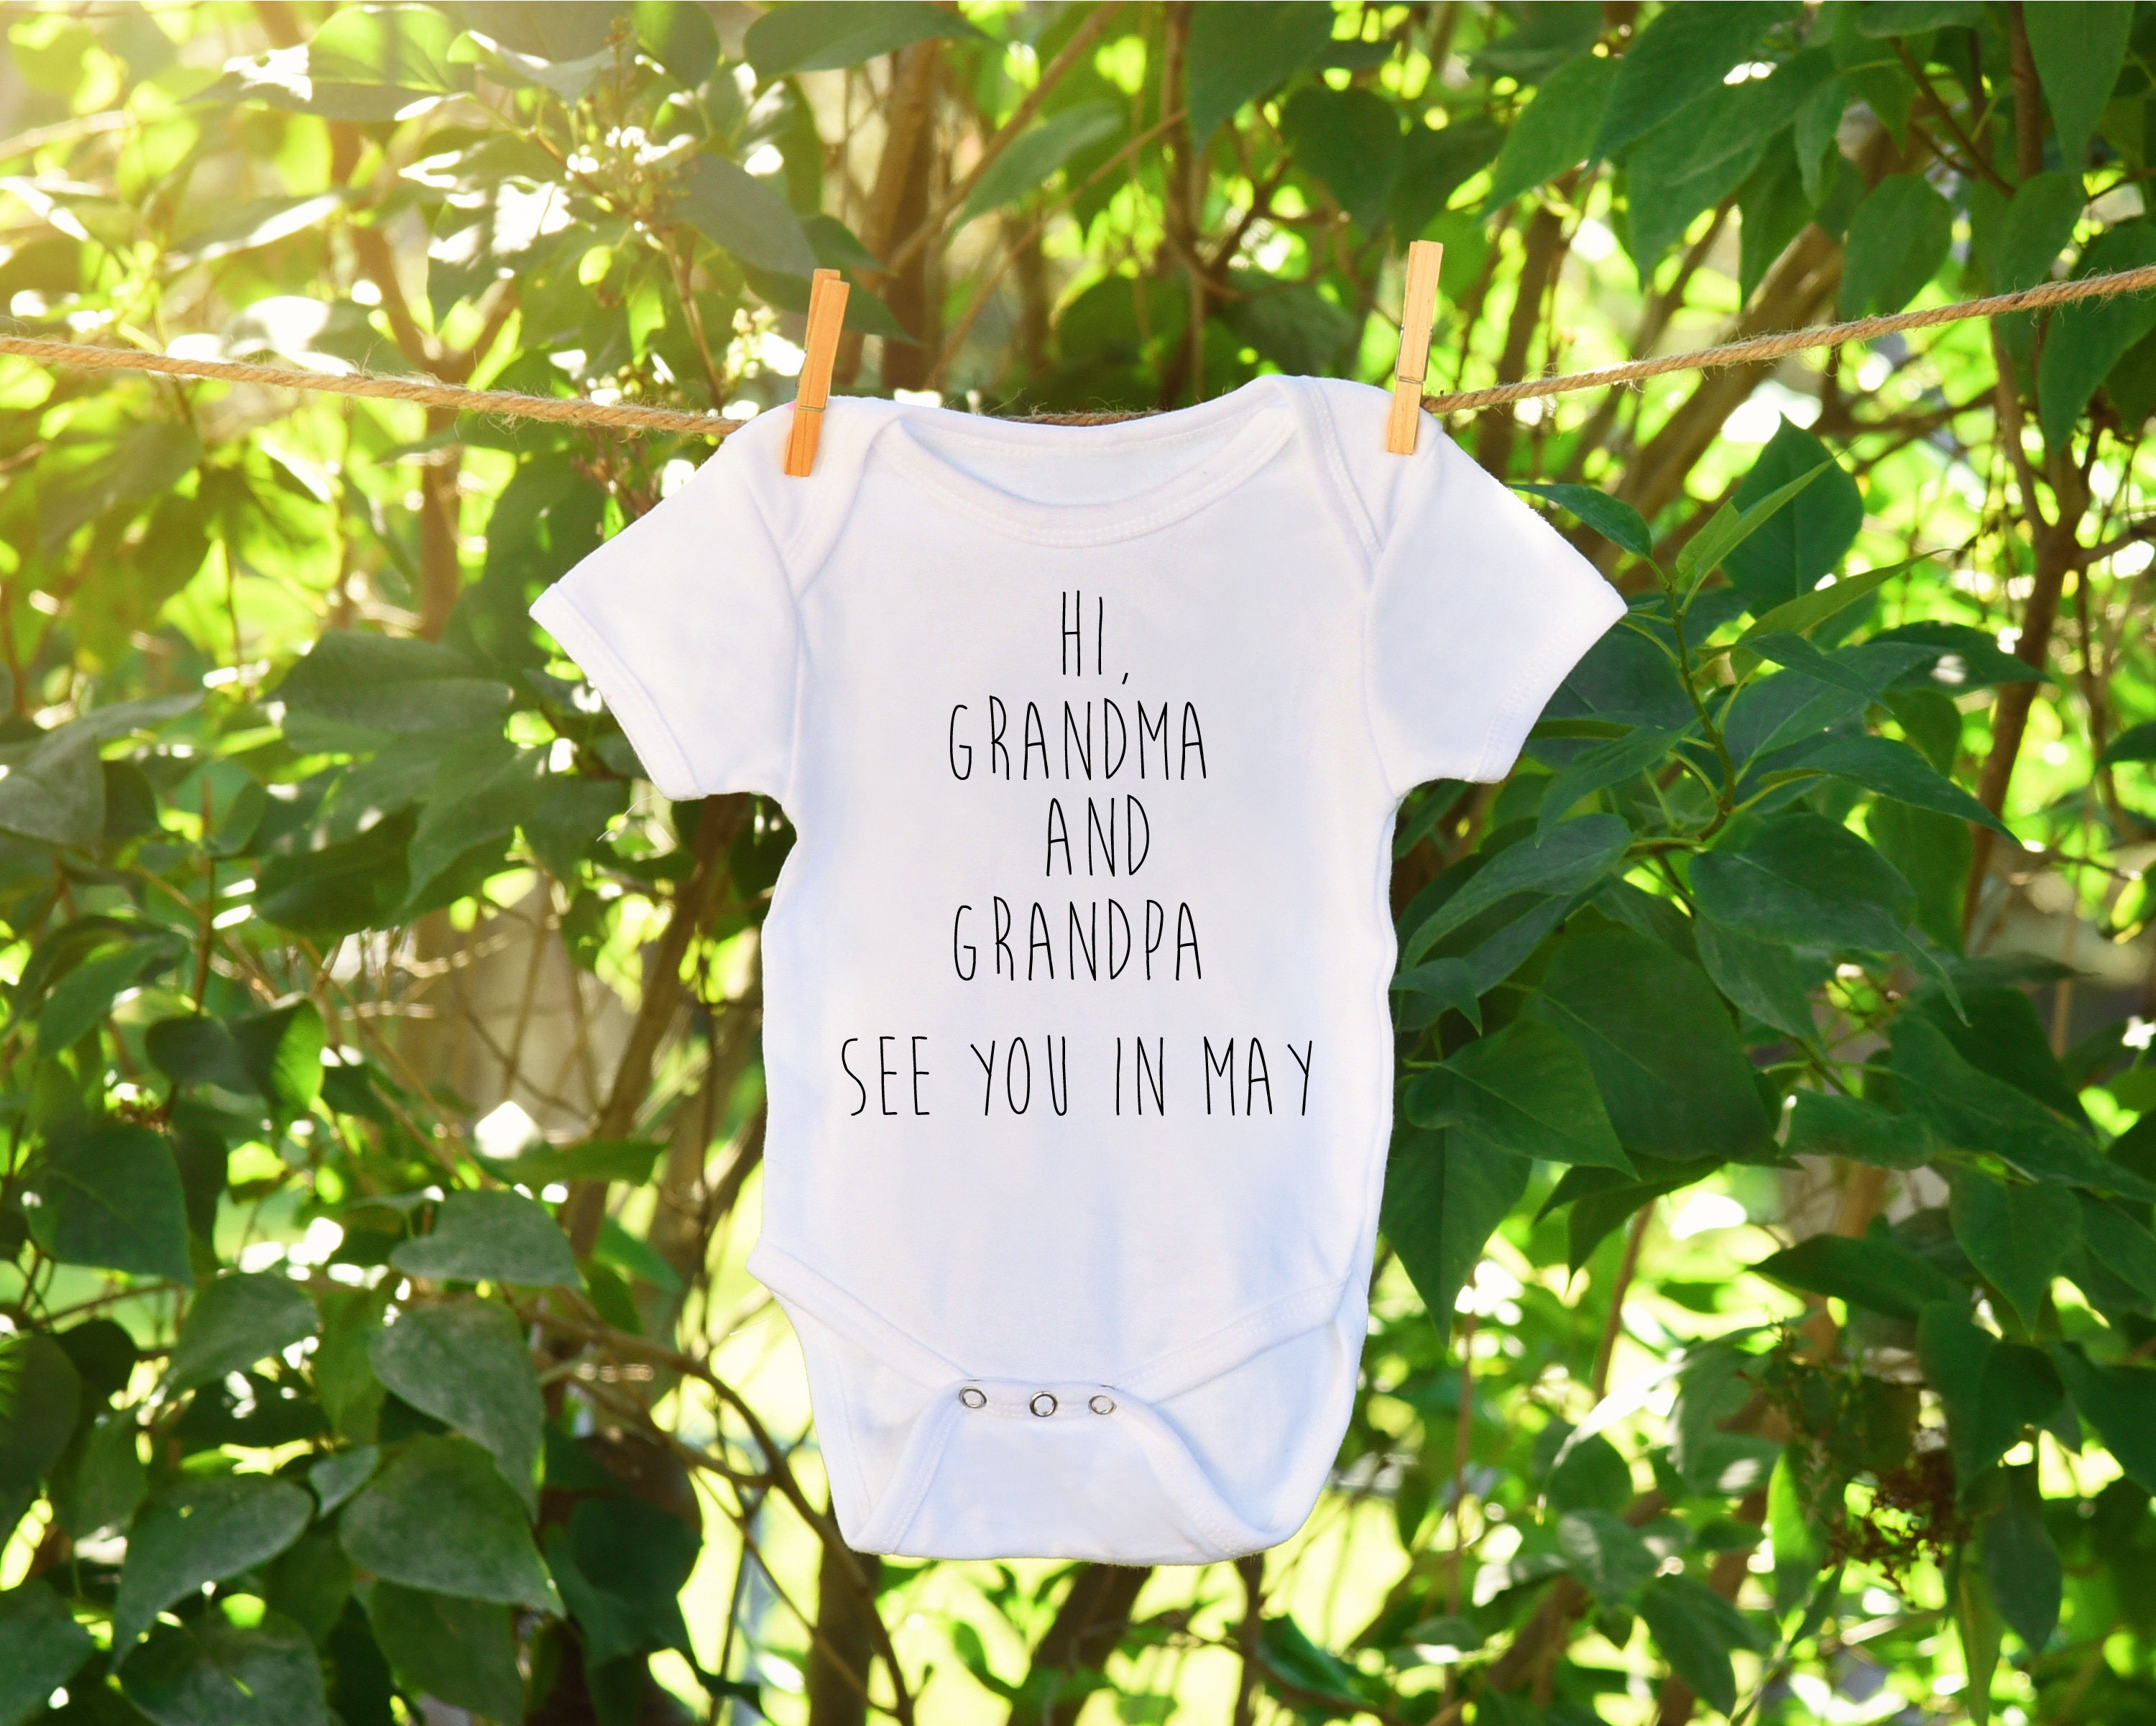 Baby Announcement Baby Announcement Onesie Grandparent baby – Grandparents Announcement Baby